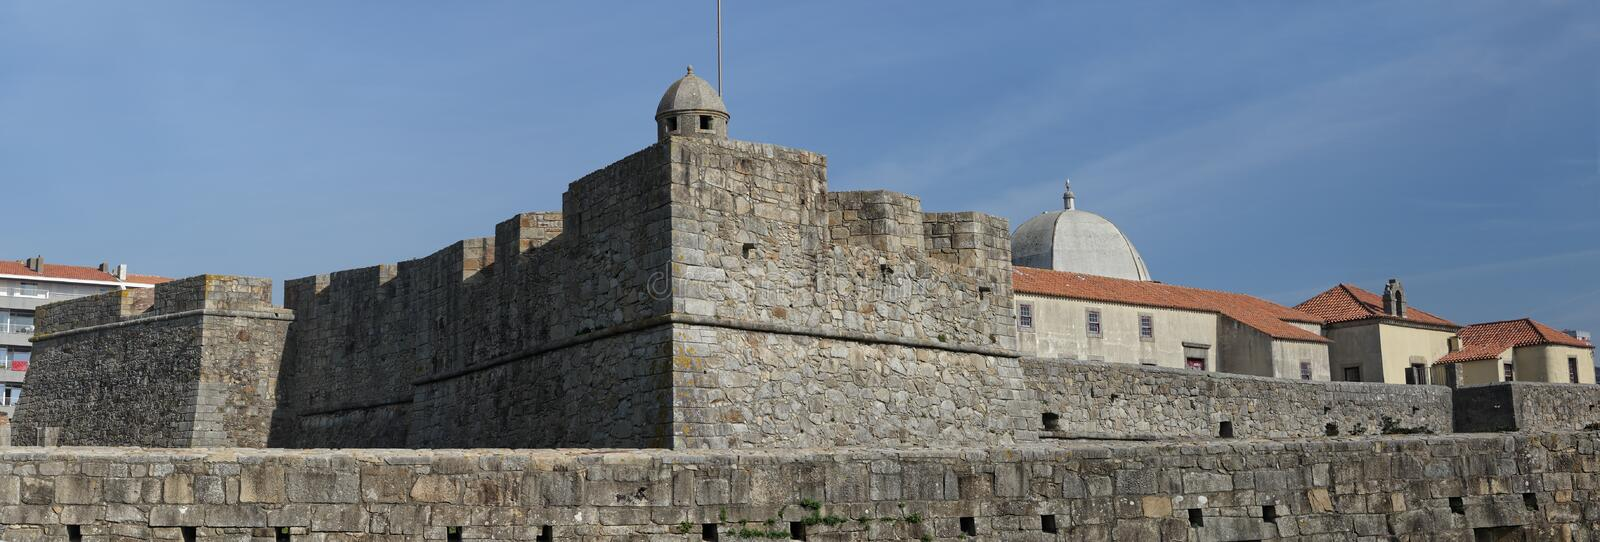 Fort of Sao Joao da Foz. Fort of Sao Joao Batista da Foz panorama. Built in the sixteenth century, is situated acrossed the Douro river mouth, Porto, Portugal stock photos